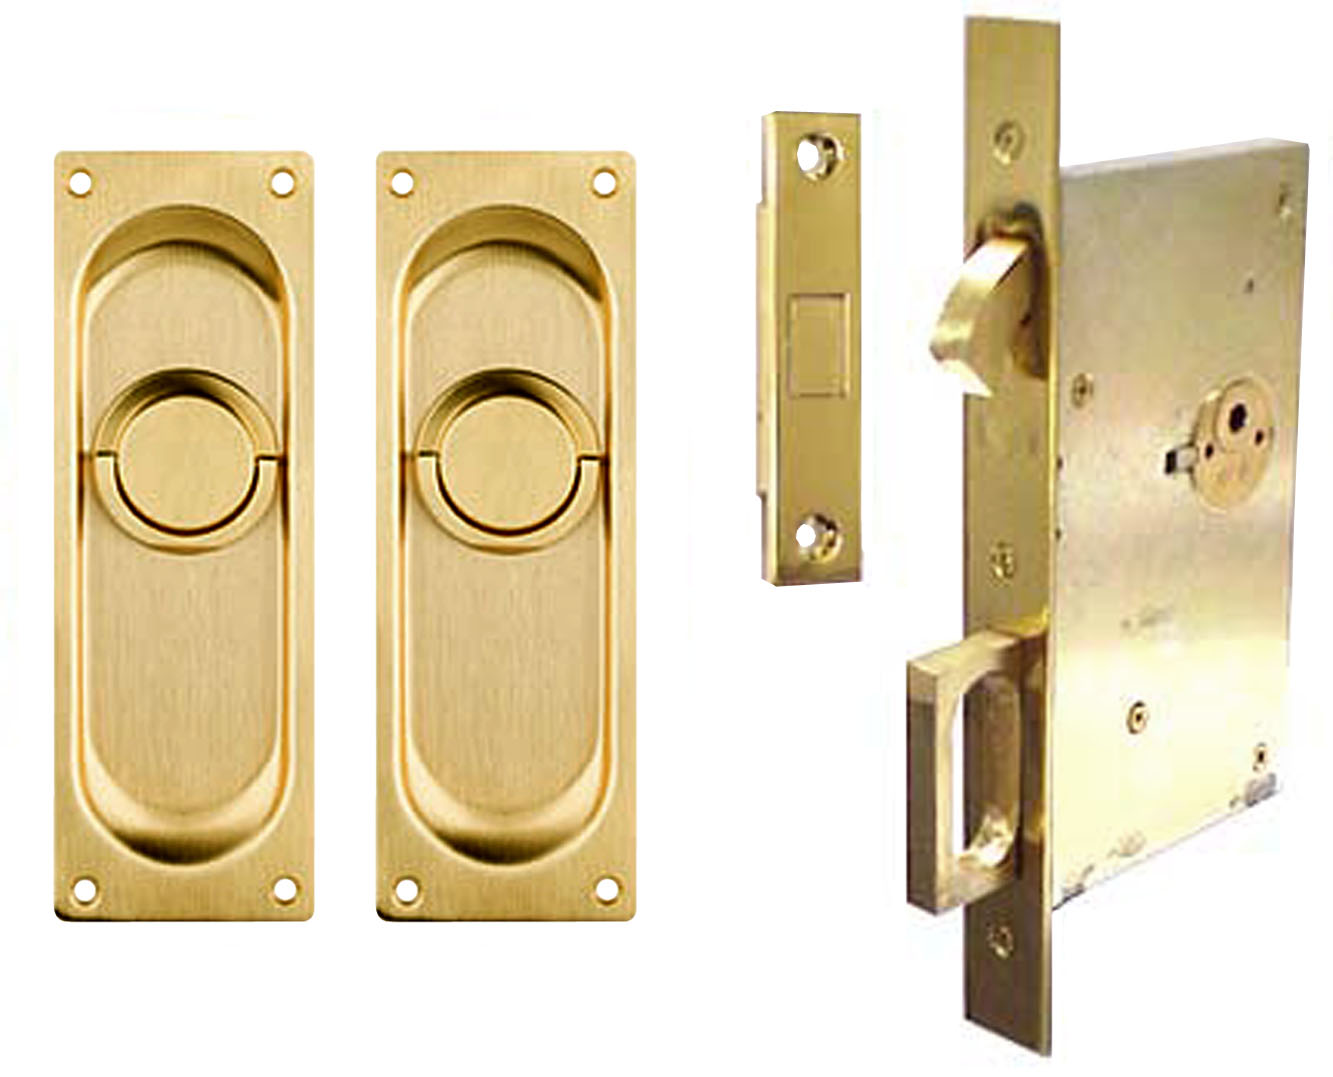 Pocket door bathroom lock - Bryn_mawr_pocket_door_lock Png 1 333 1 077 Pixels Pocket Door Lockdoor